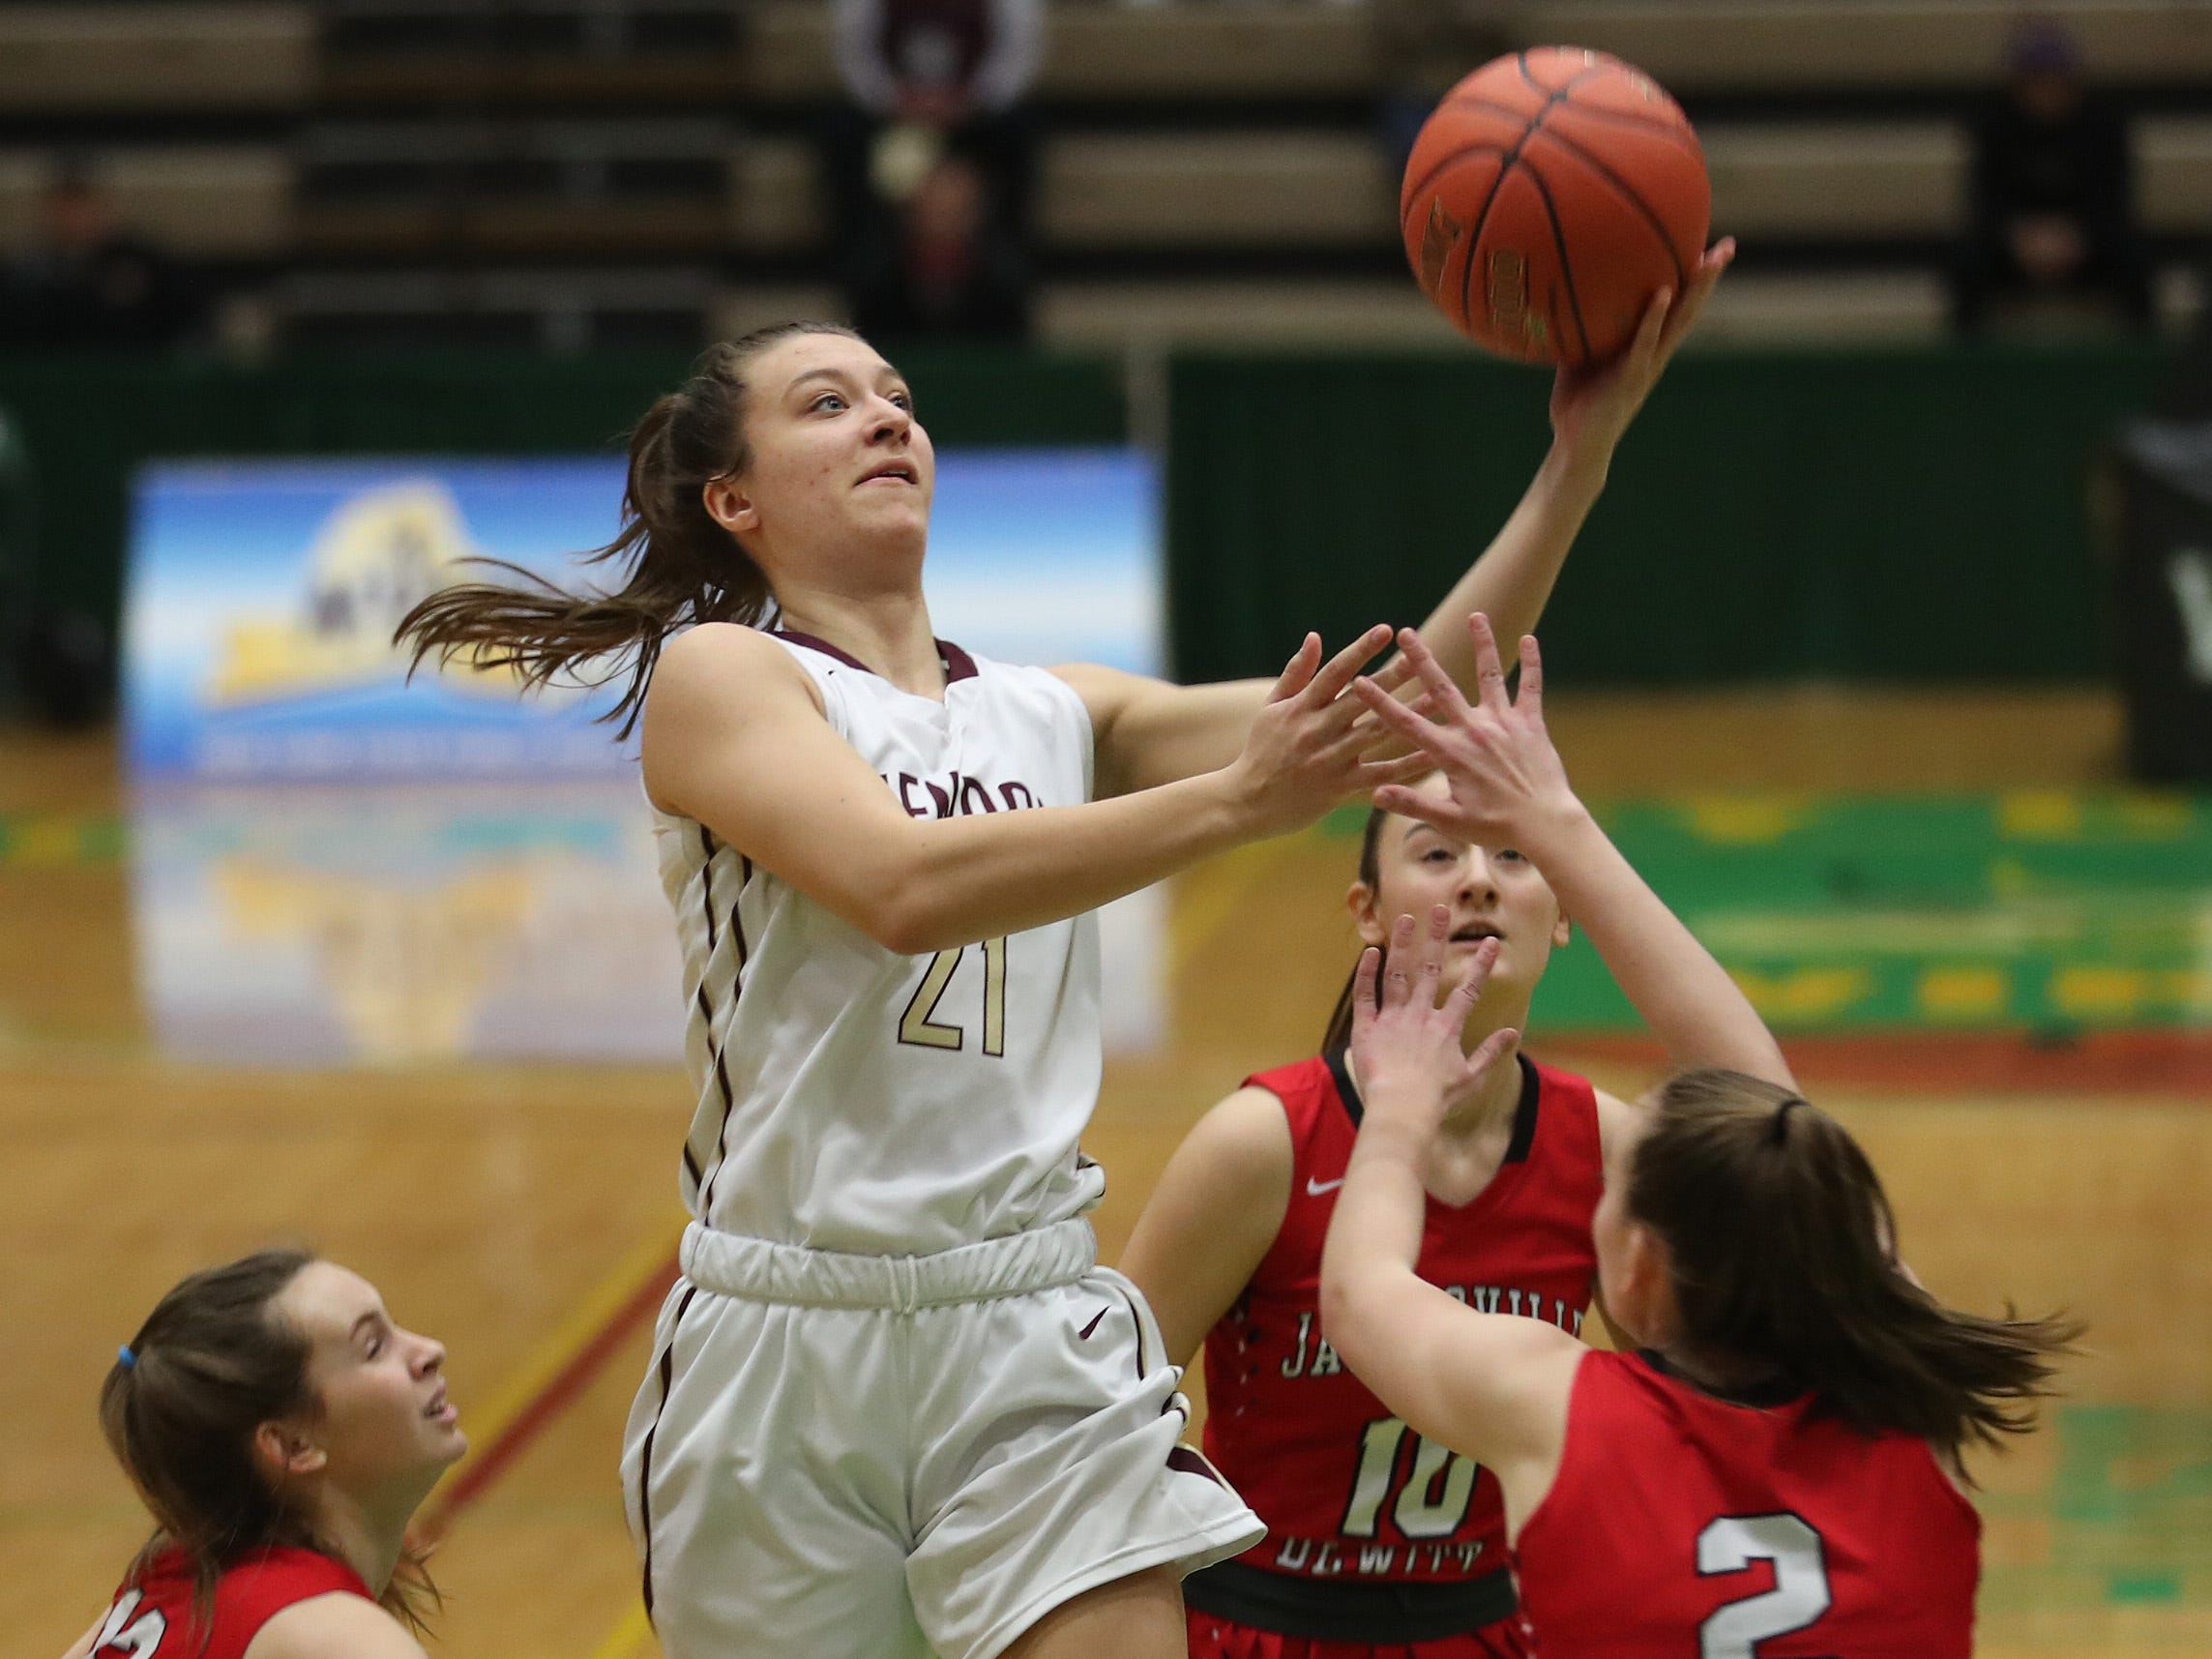 Pittsford Mendon's Alana Fursman (21) drives to the basket against Jamesville-DeWitt during the girls Class A state semifinal at Hudson Valley Community College in Troy March 16, 2019. Mendon won 44-32.